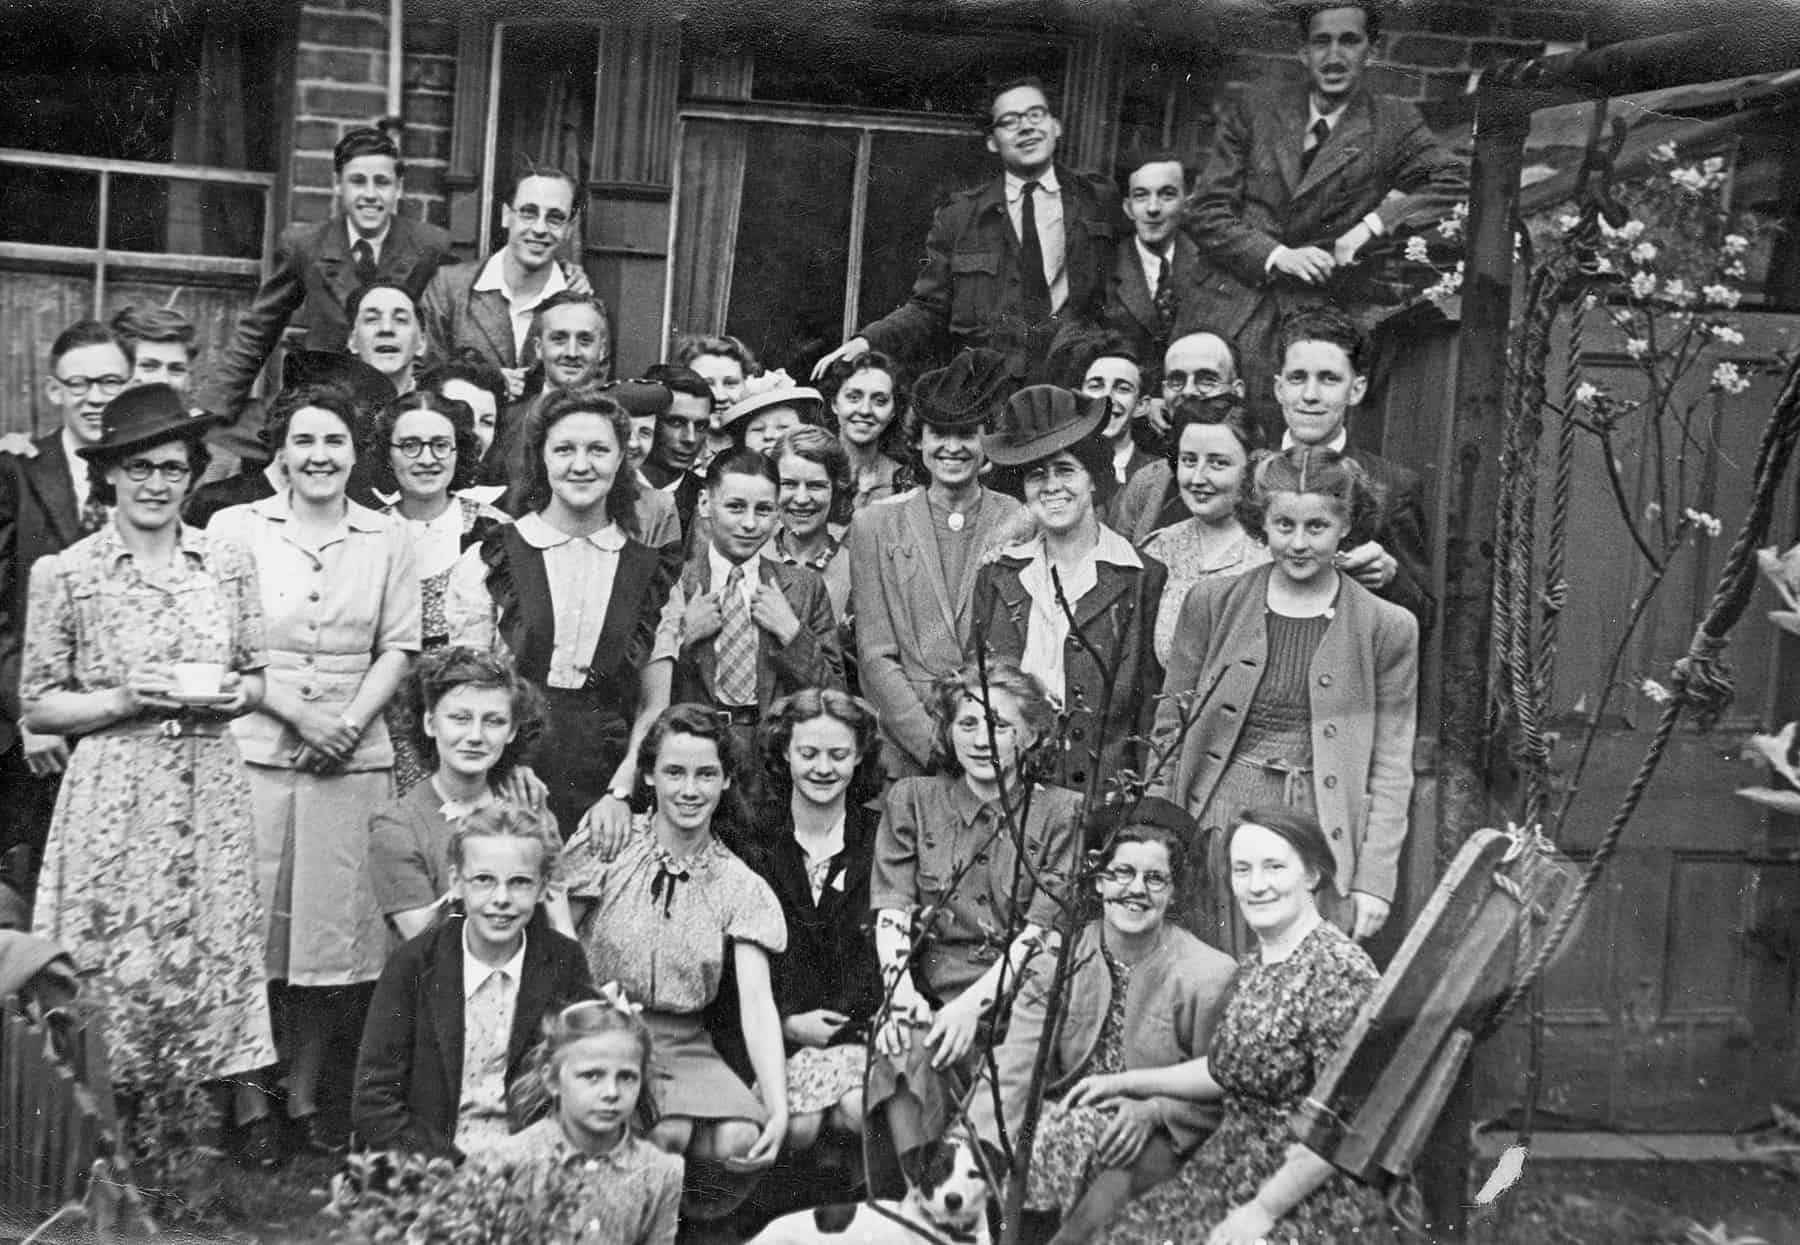 This was taken before I was born. It's a local church group,  but taken probably at Aunt Clarey's house as she used to live round the corner from the church. You don't get so many groups of people like that these days do you? We seem to be more isolated these days.